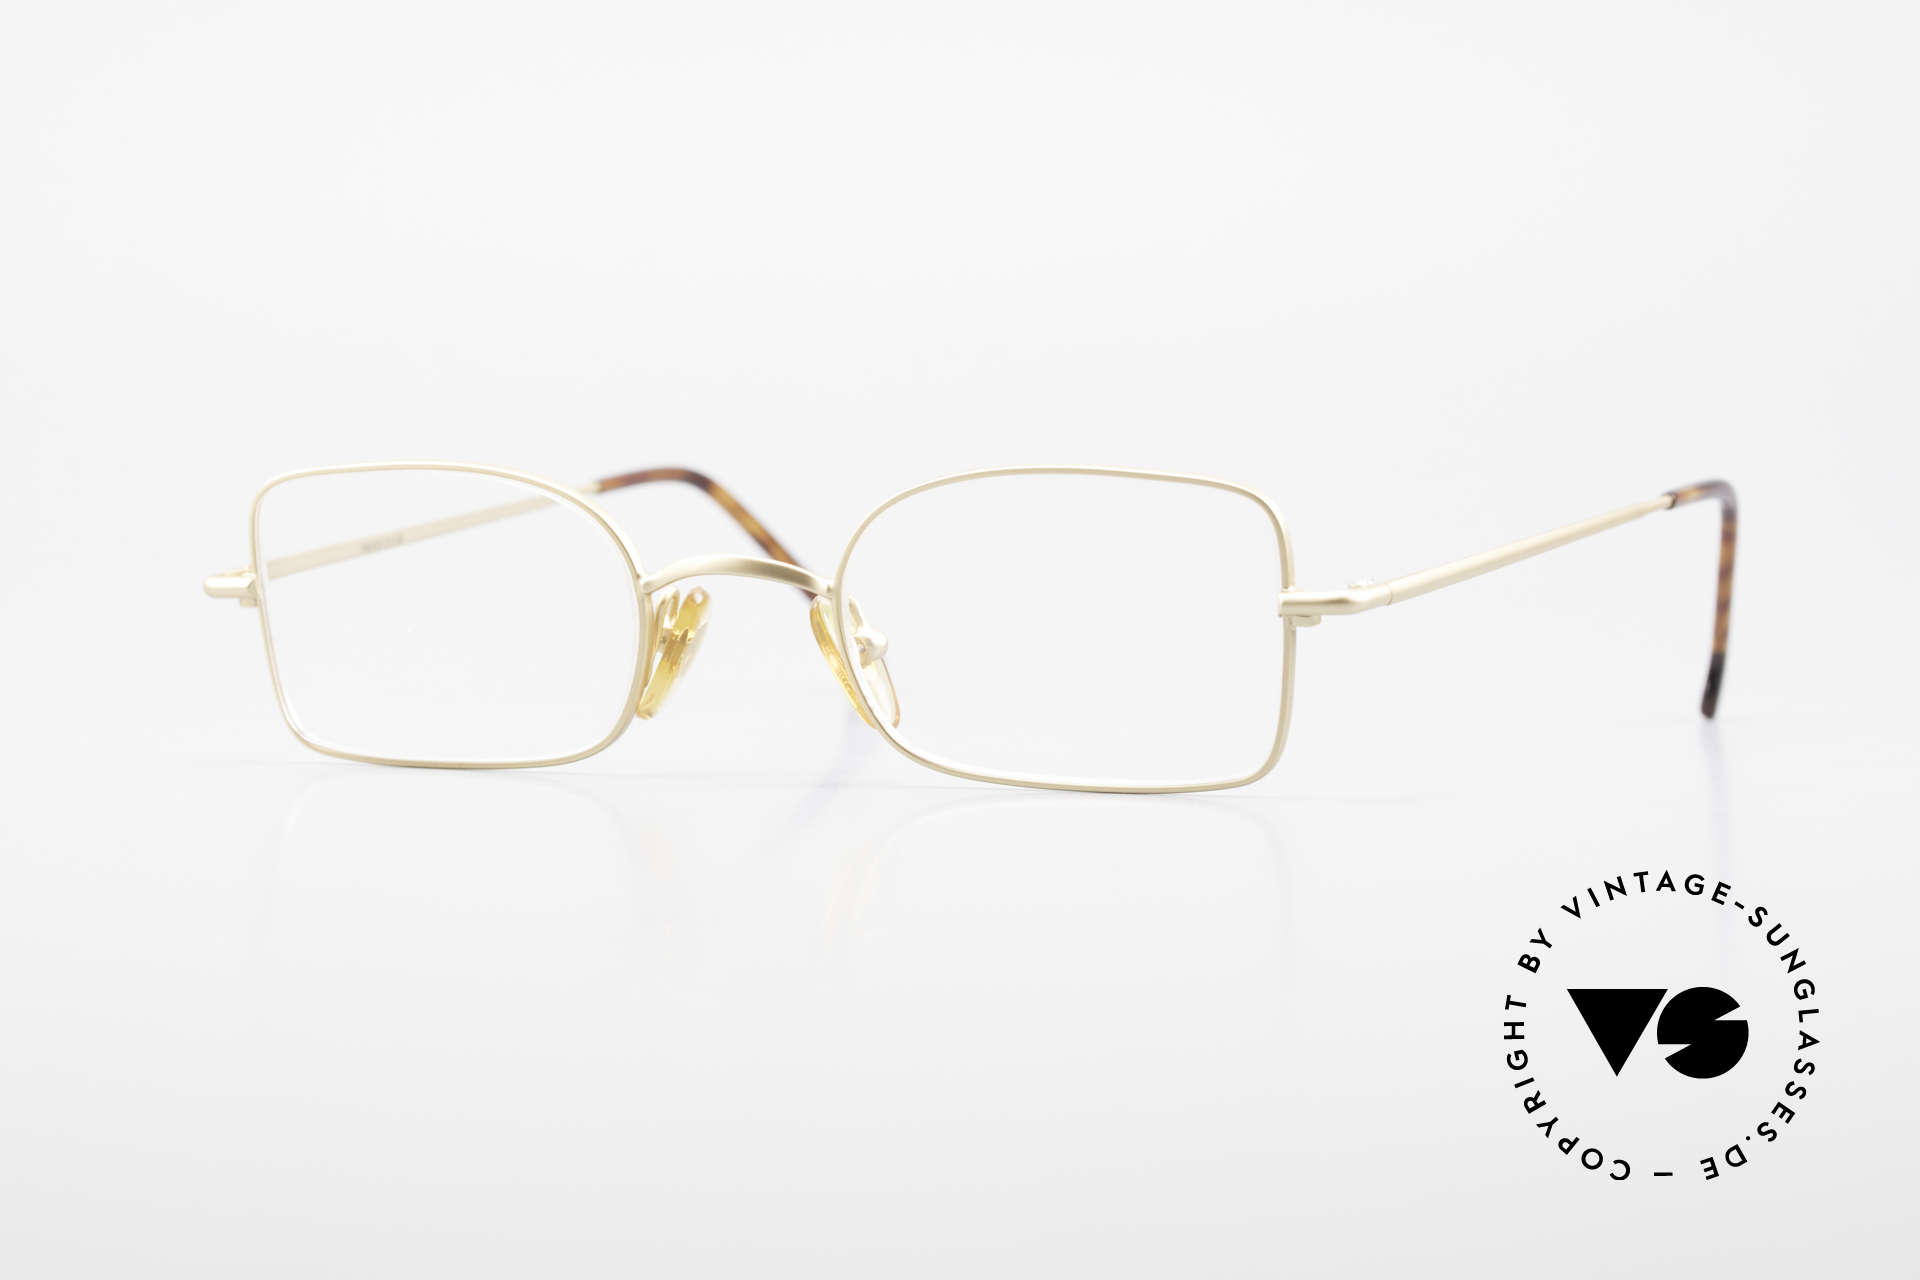 W Proksch's M19/9 Orig 90's Avantgarde Glasses, GOLD-Plated Proksch's vintage glasses from 1992, Made for Men and Women